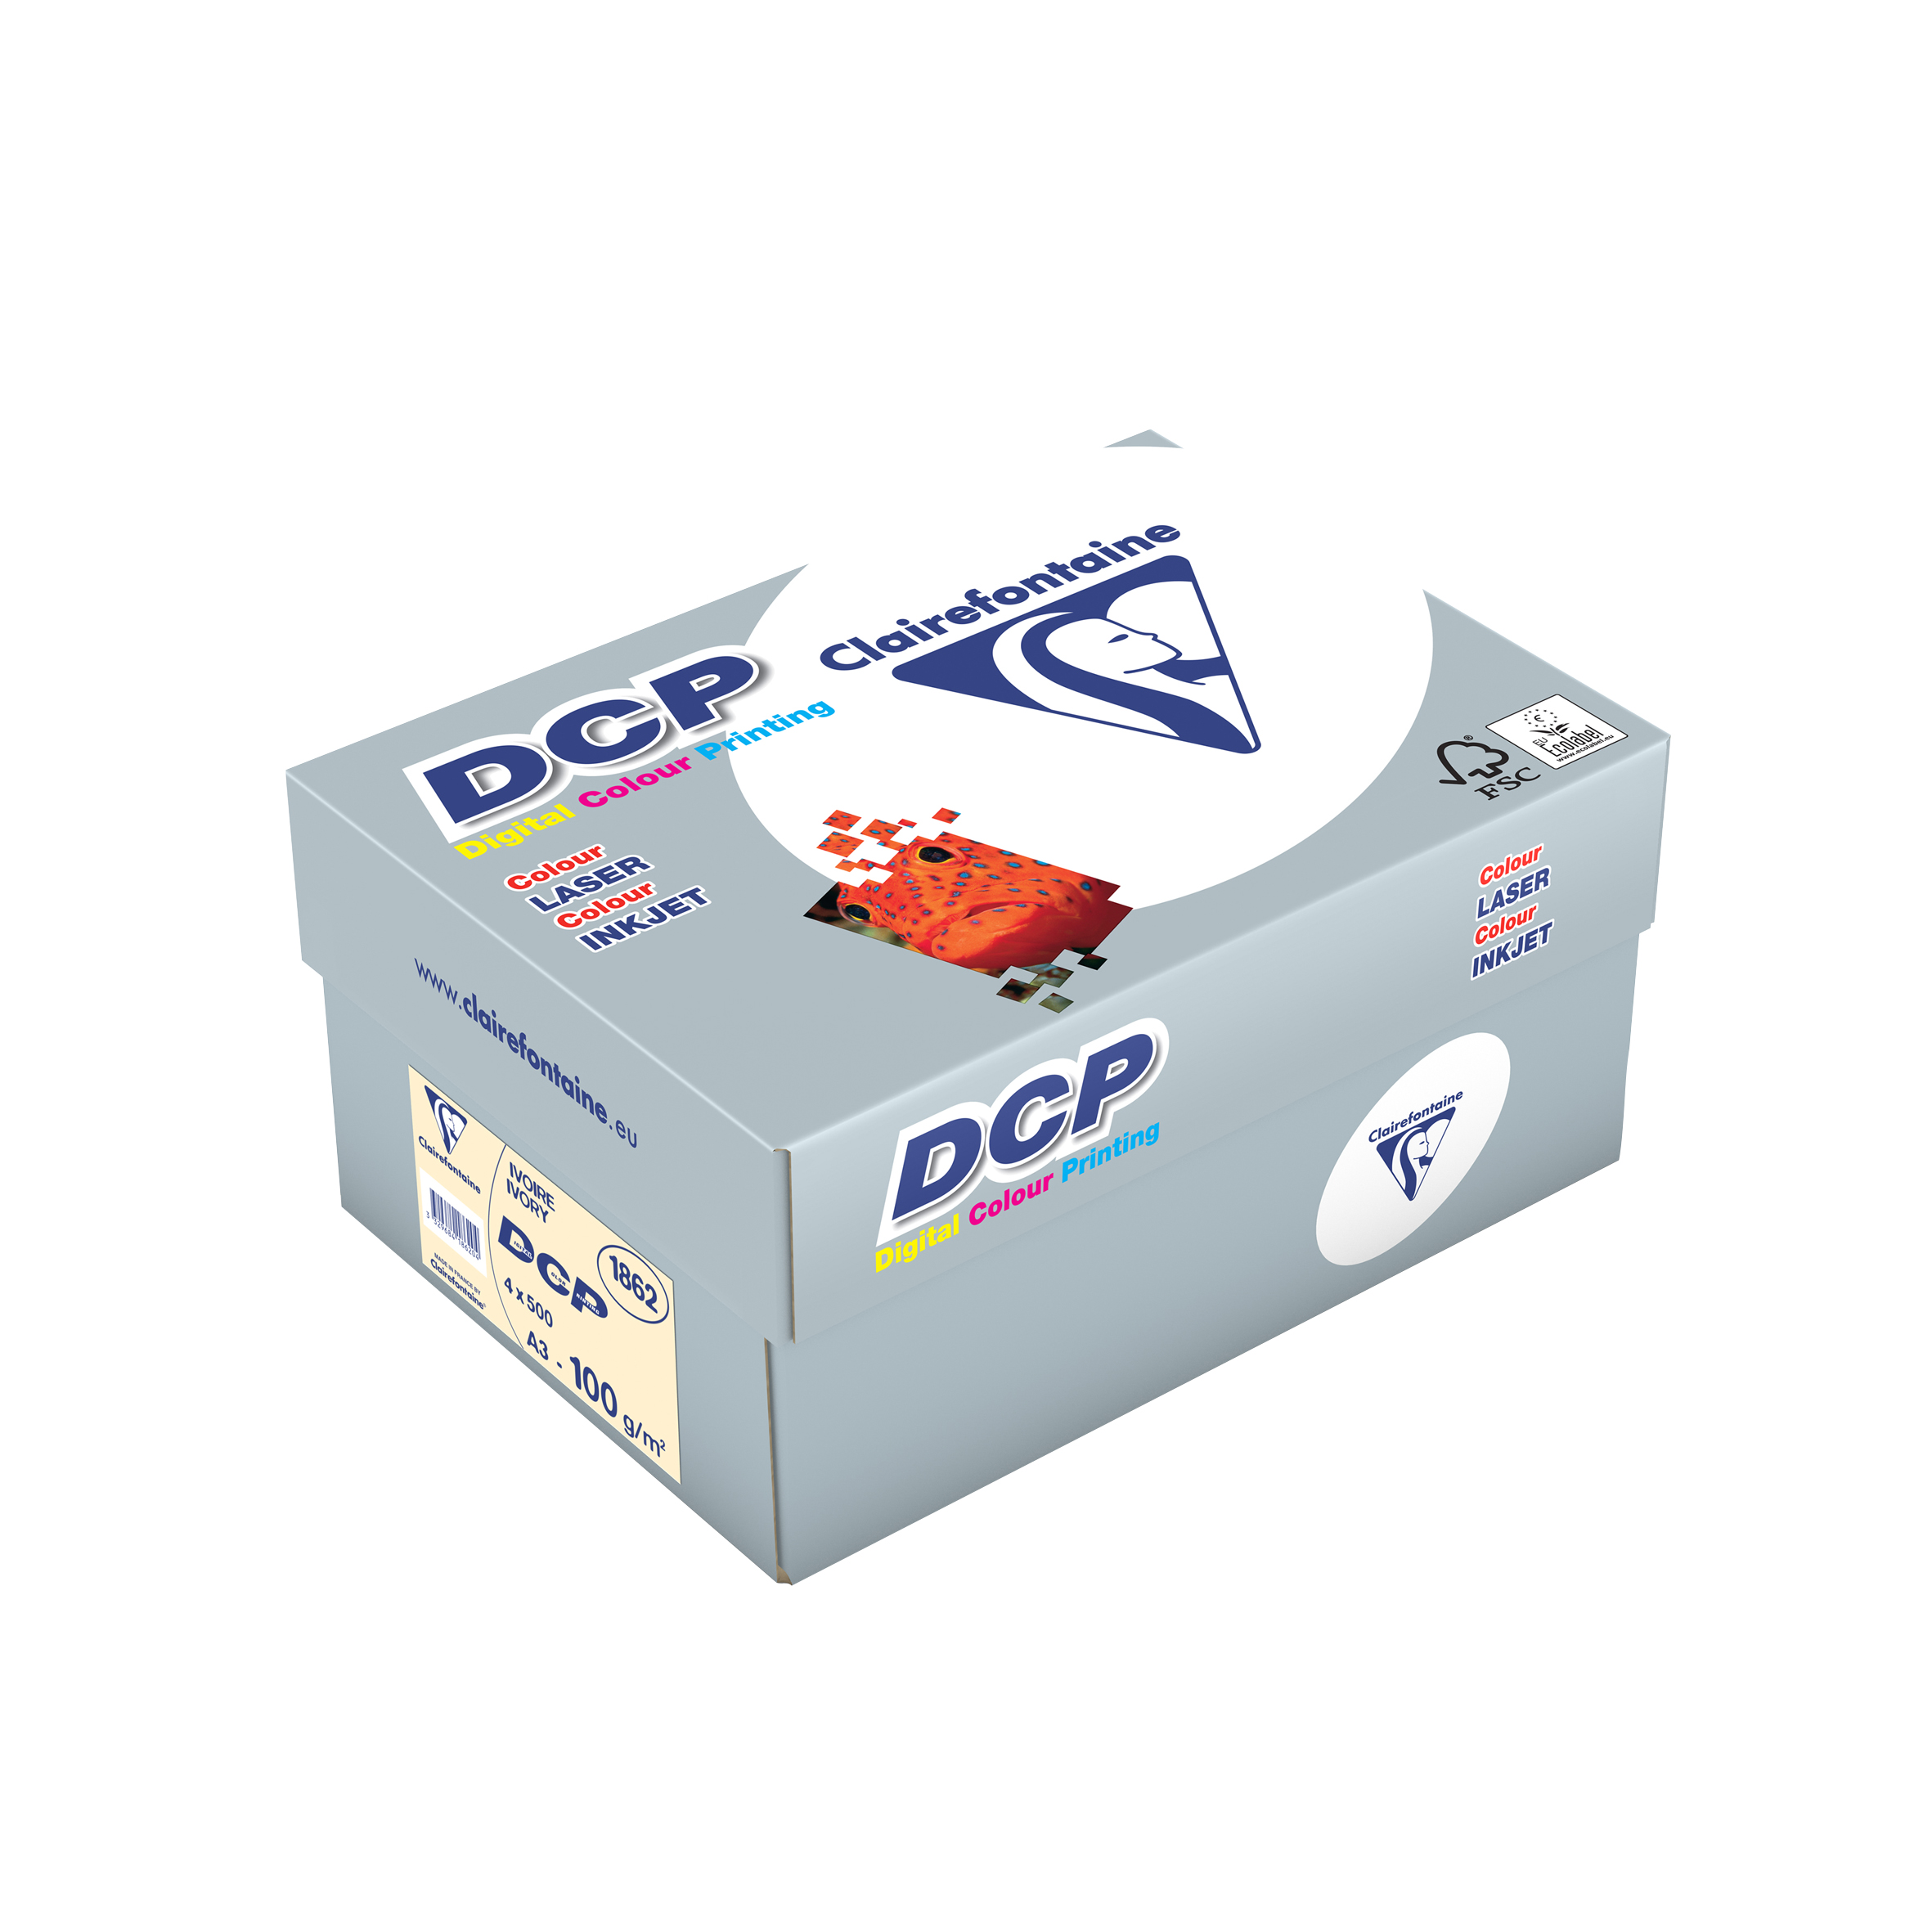 Clairefontaine DCP Ivory elfenbein digital color printing 100g/m² DIN-A3 2000 Blatt 1862C